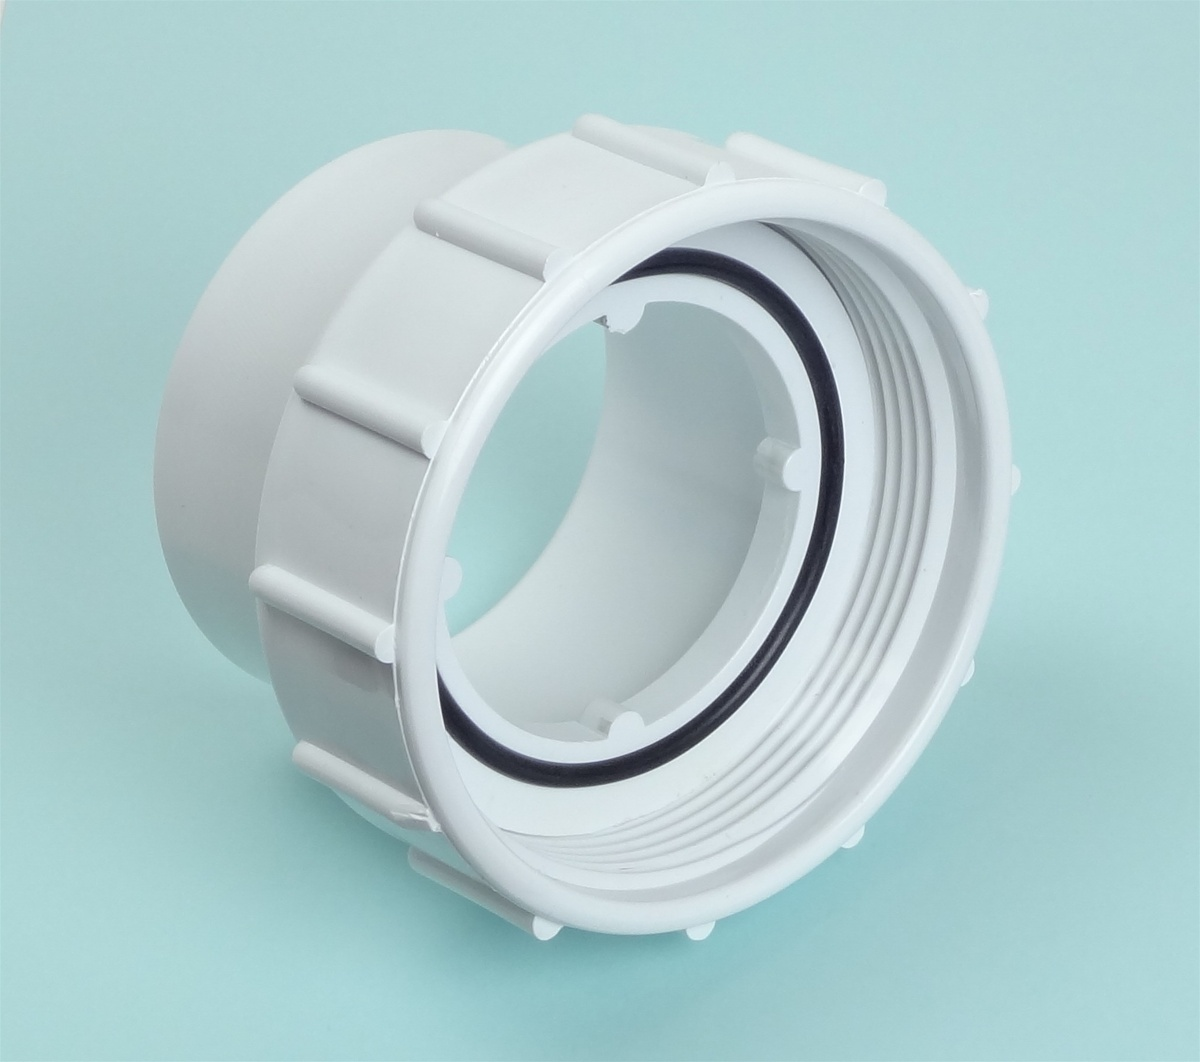 Hot Tub Pump Union For Waterway Pumps Pump Union For Ultra Jet